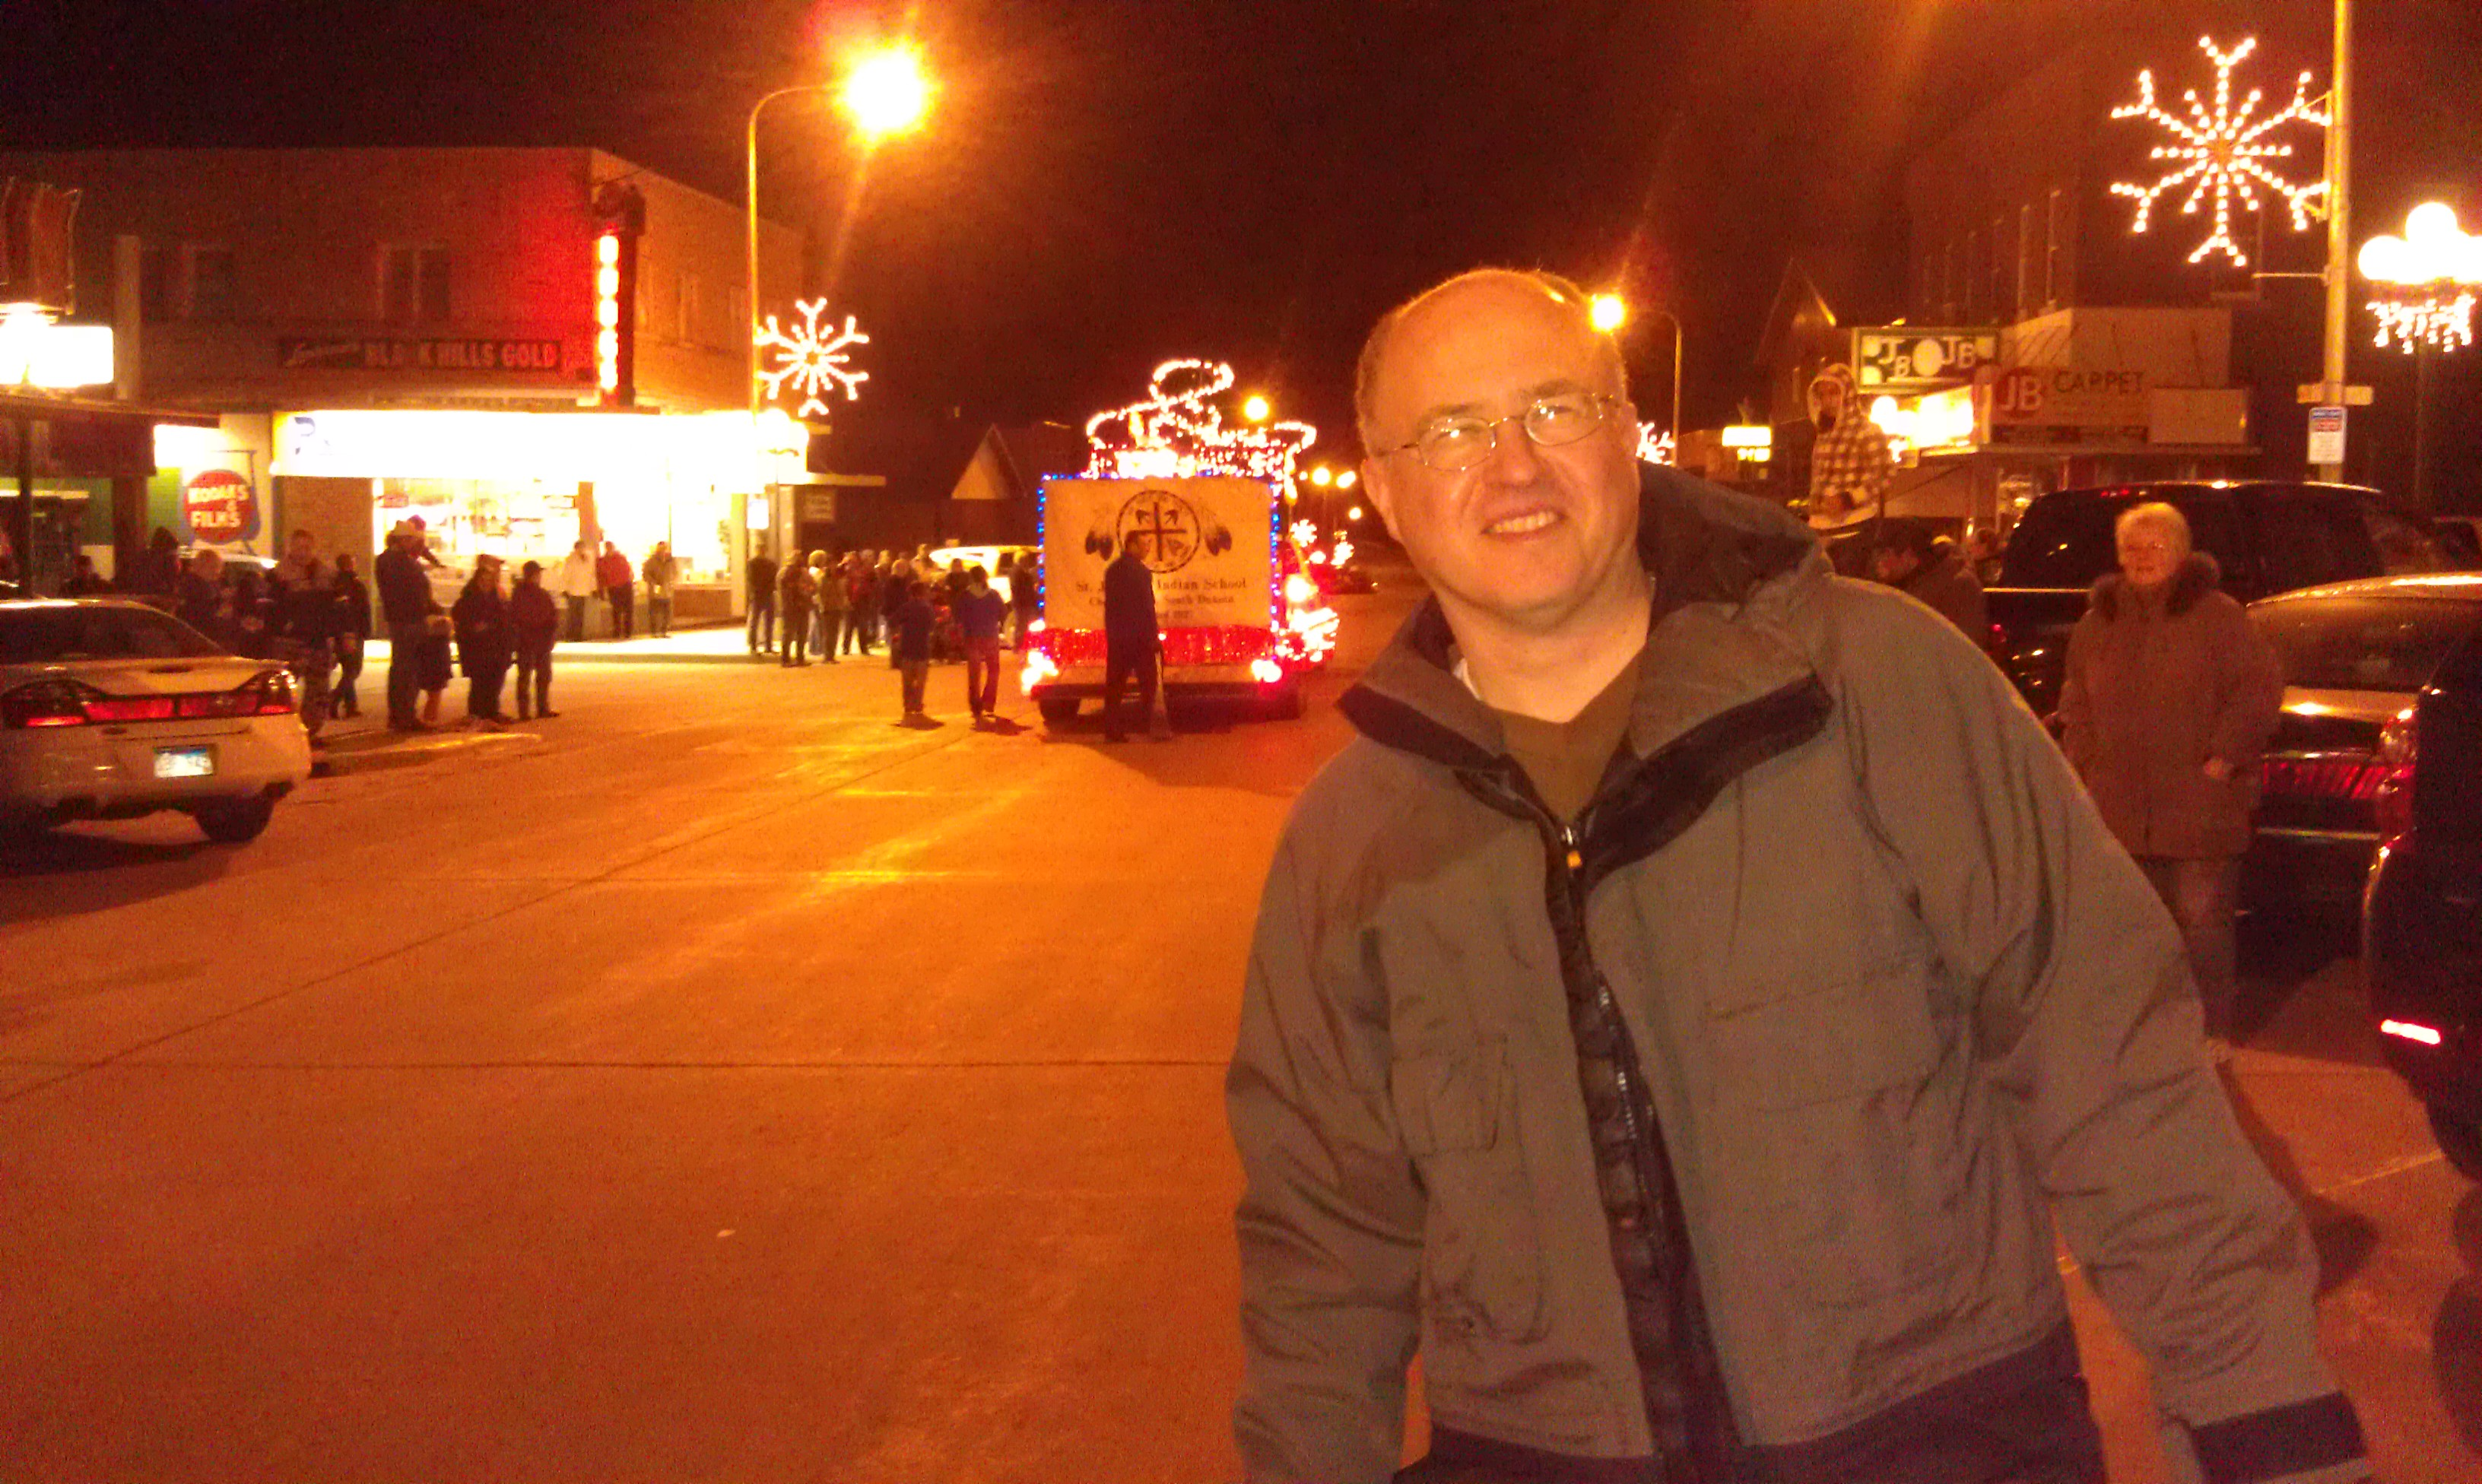 Here I am with the St. Joseph's Indian School float in the background.